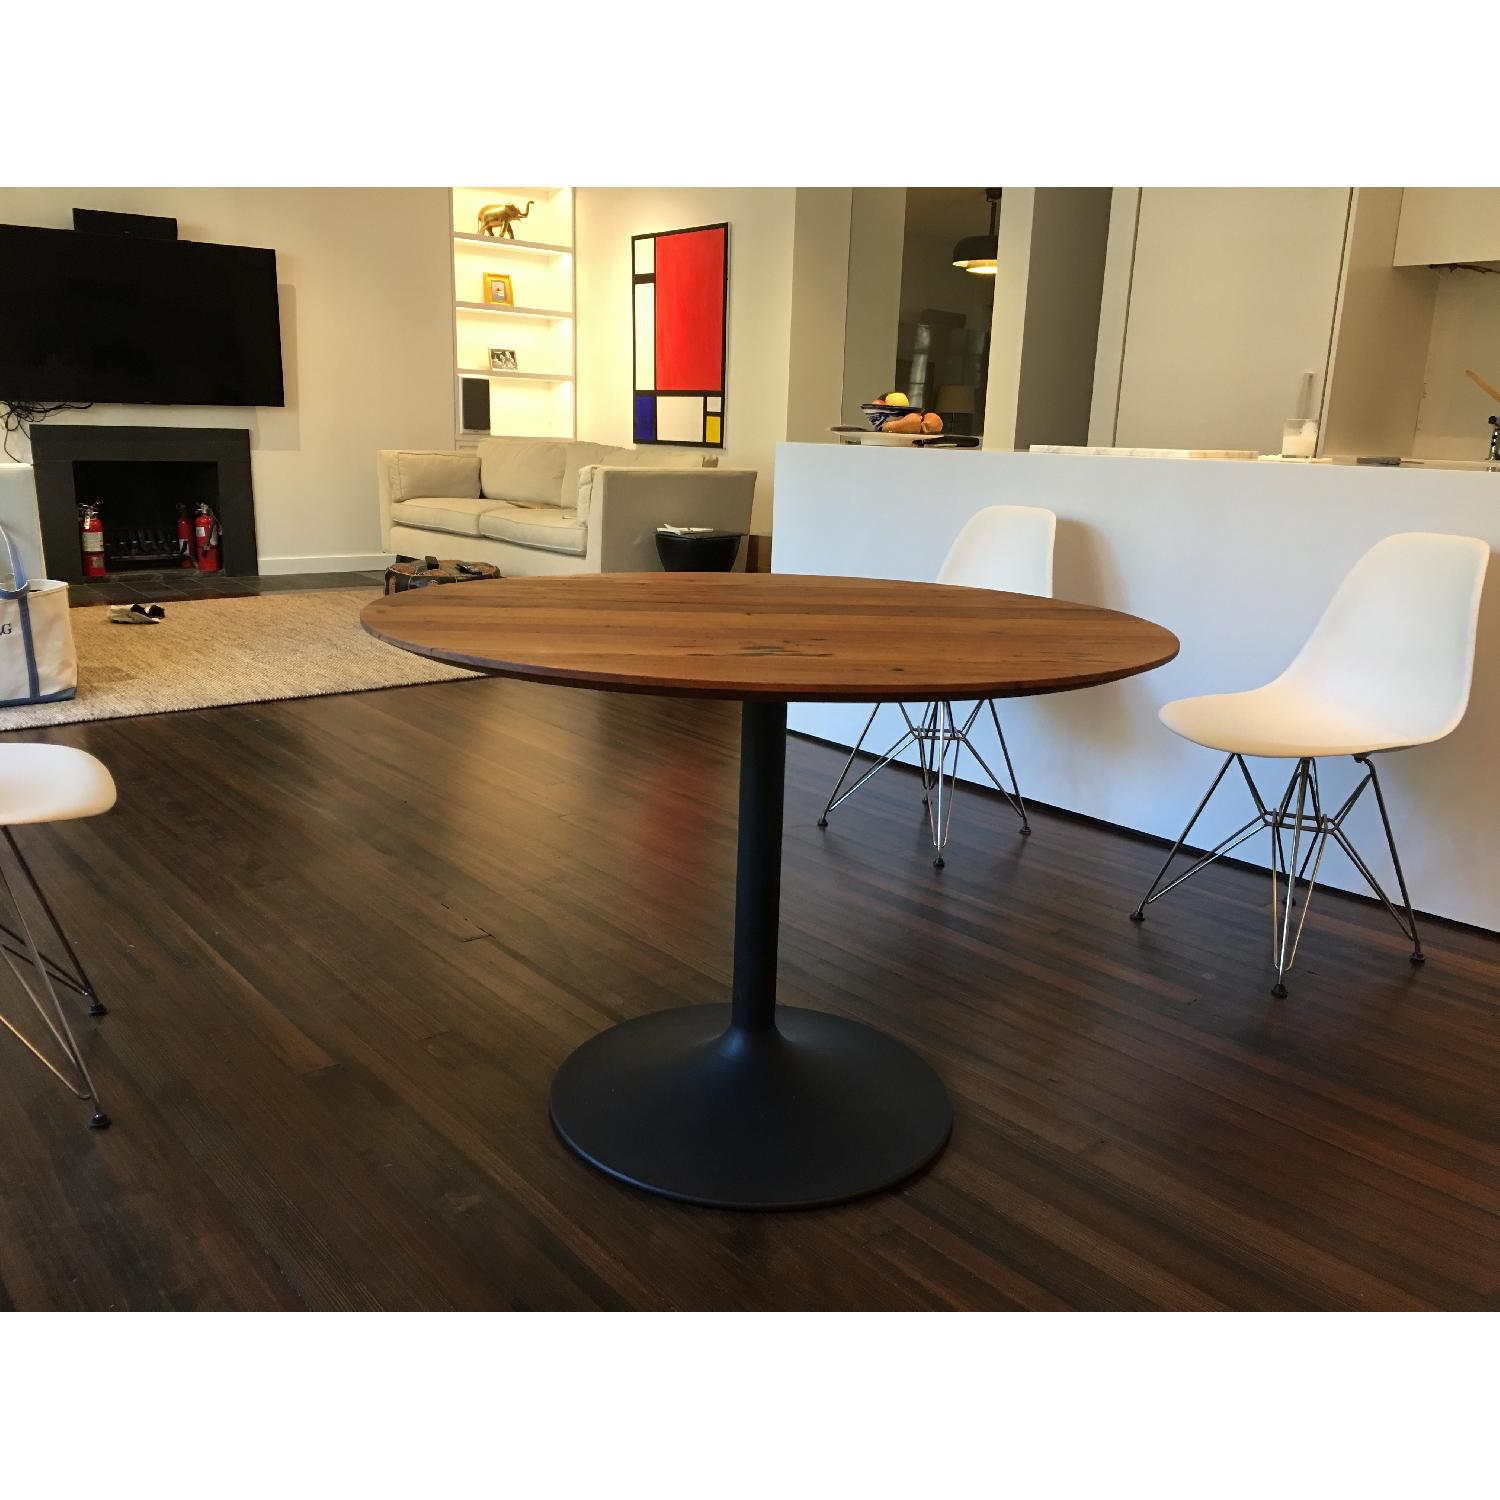 Room & Board Aria Reclaimed Chestnut Wood Dining Table - image-1